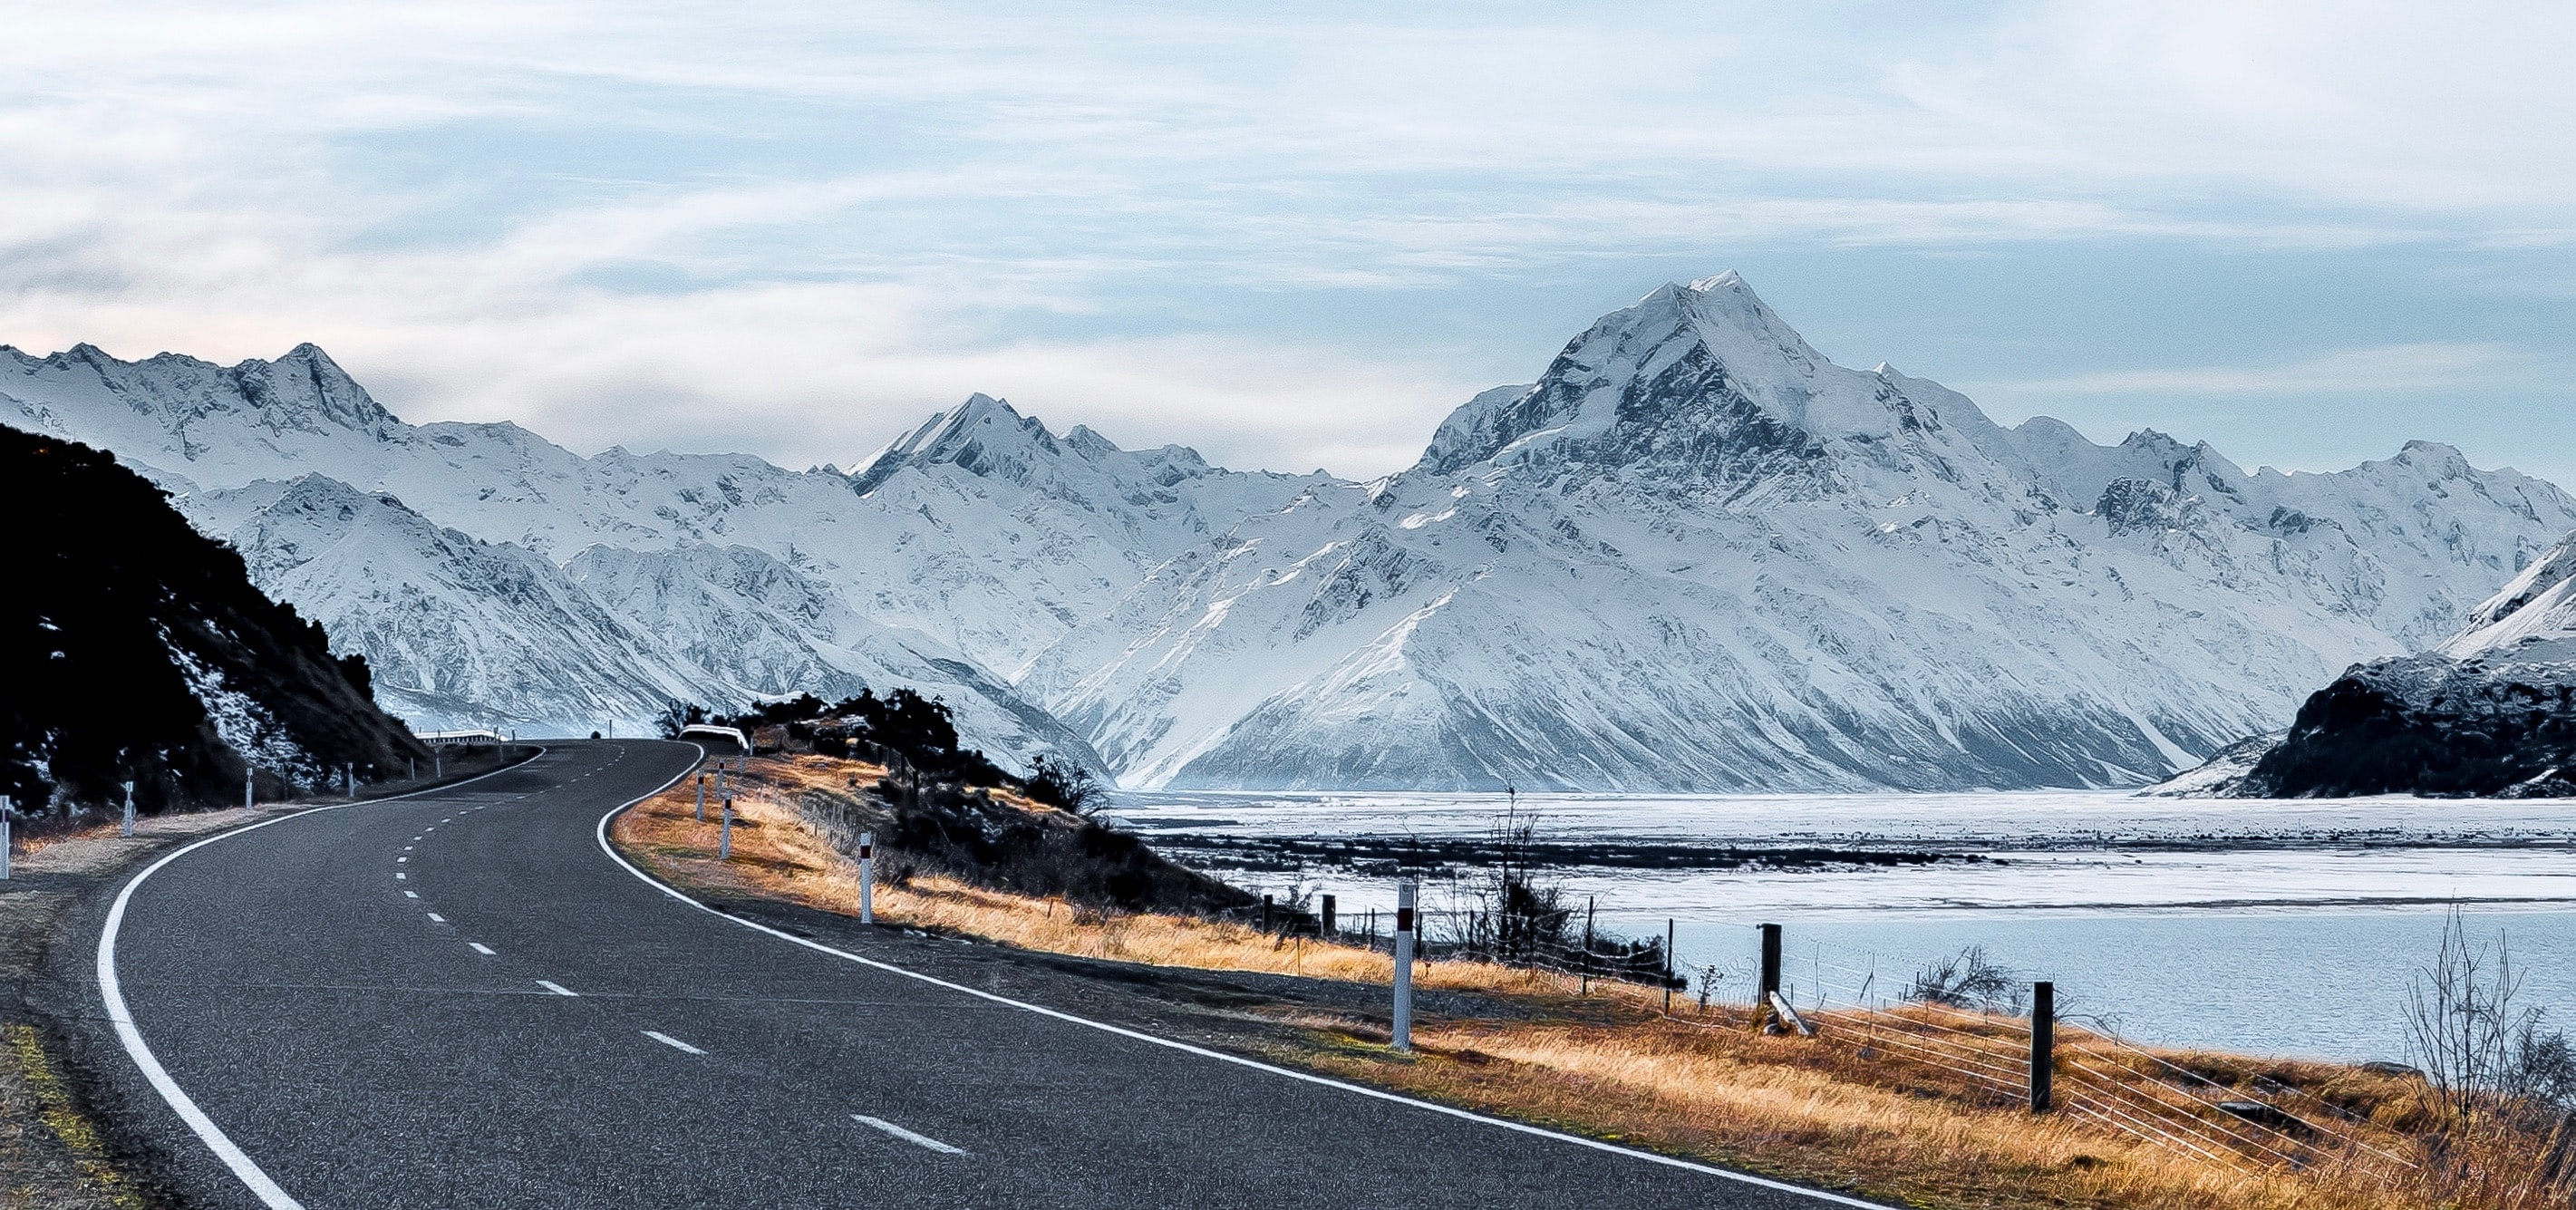 gray road beside body of water fronting mountain